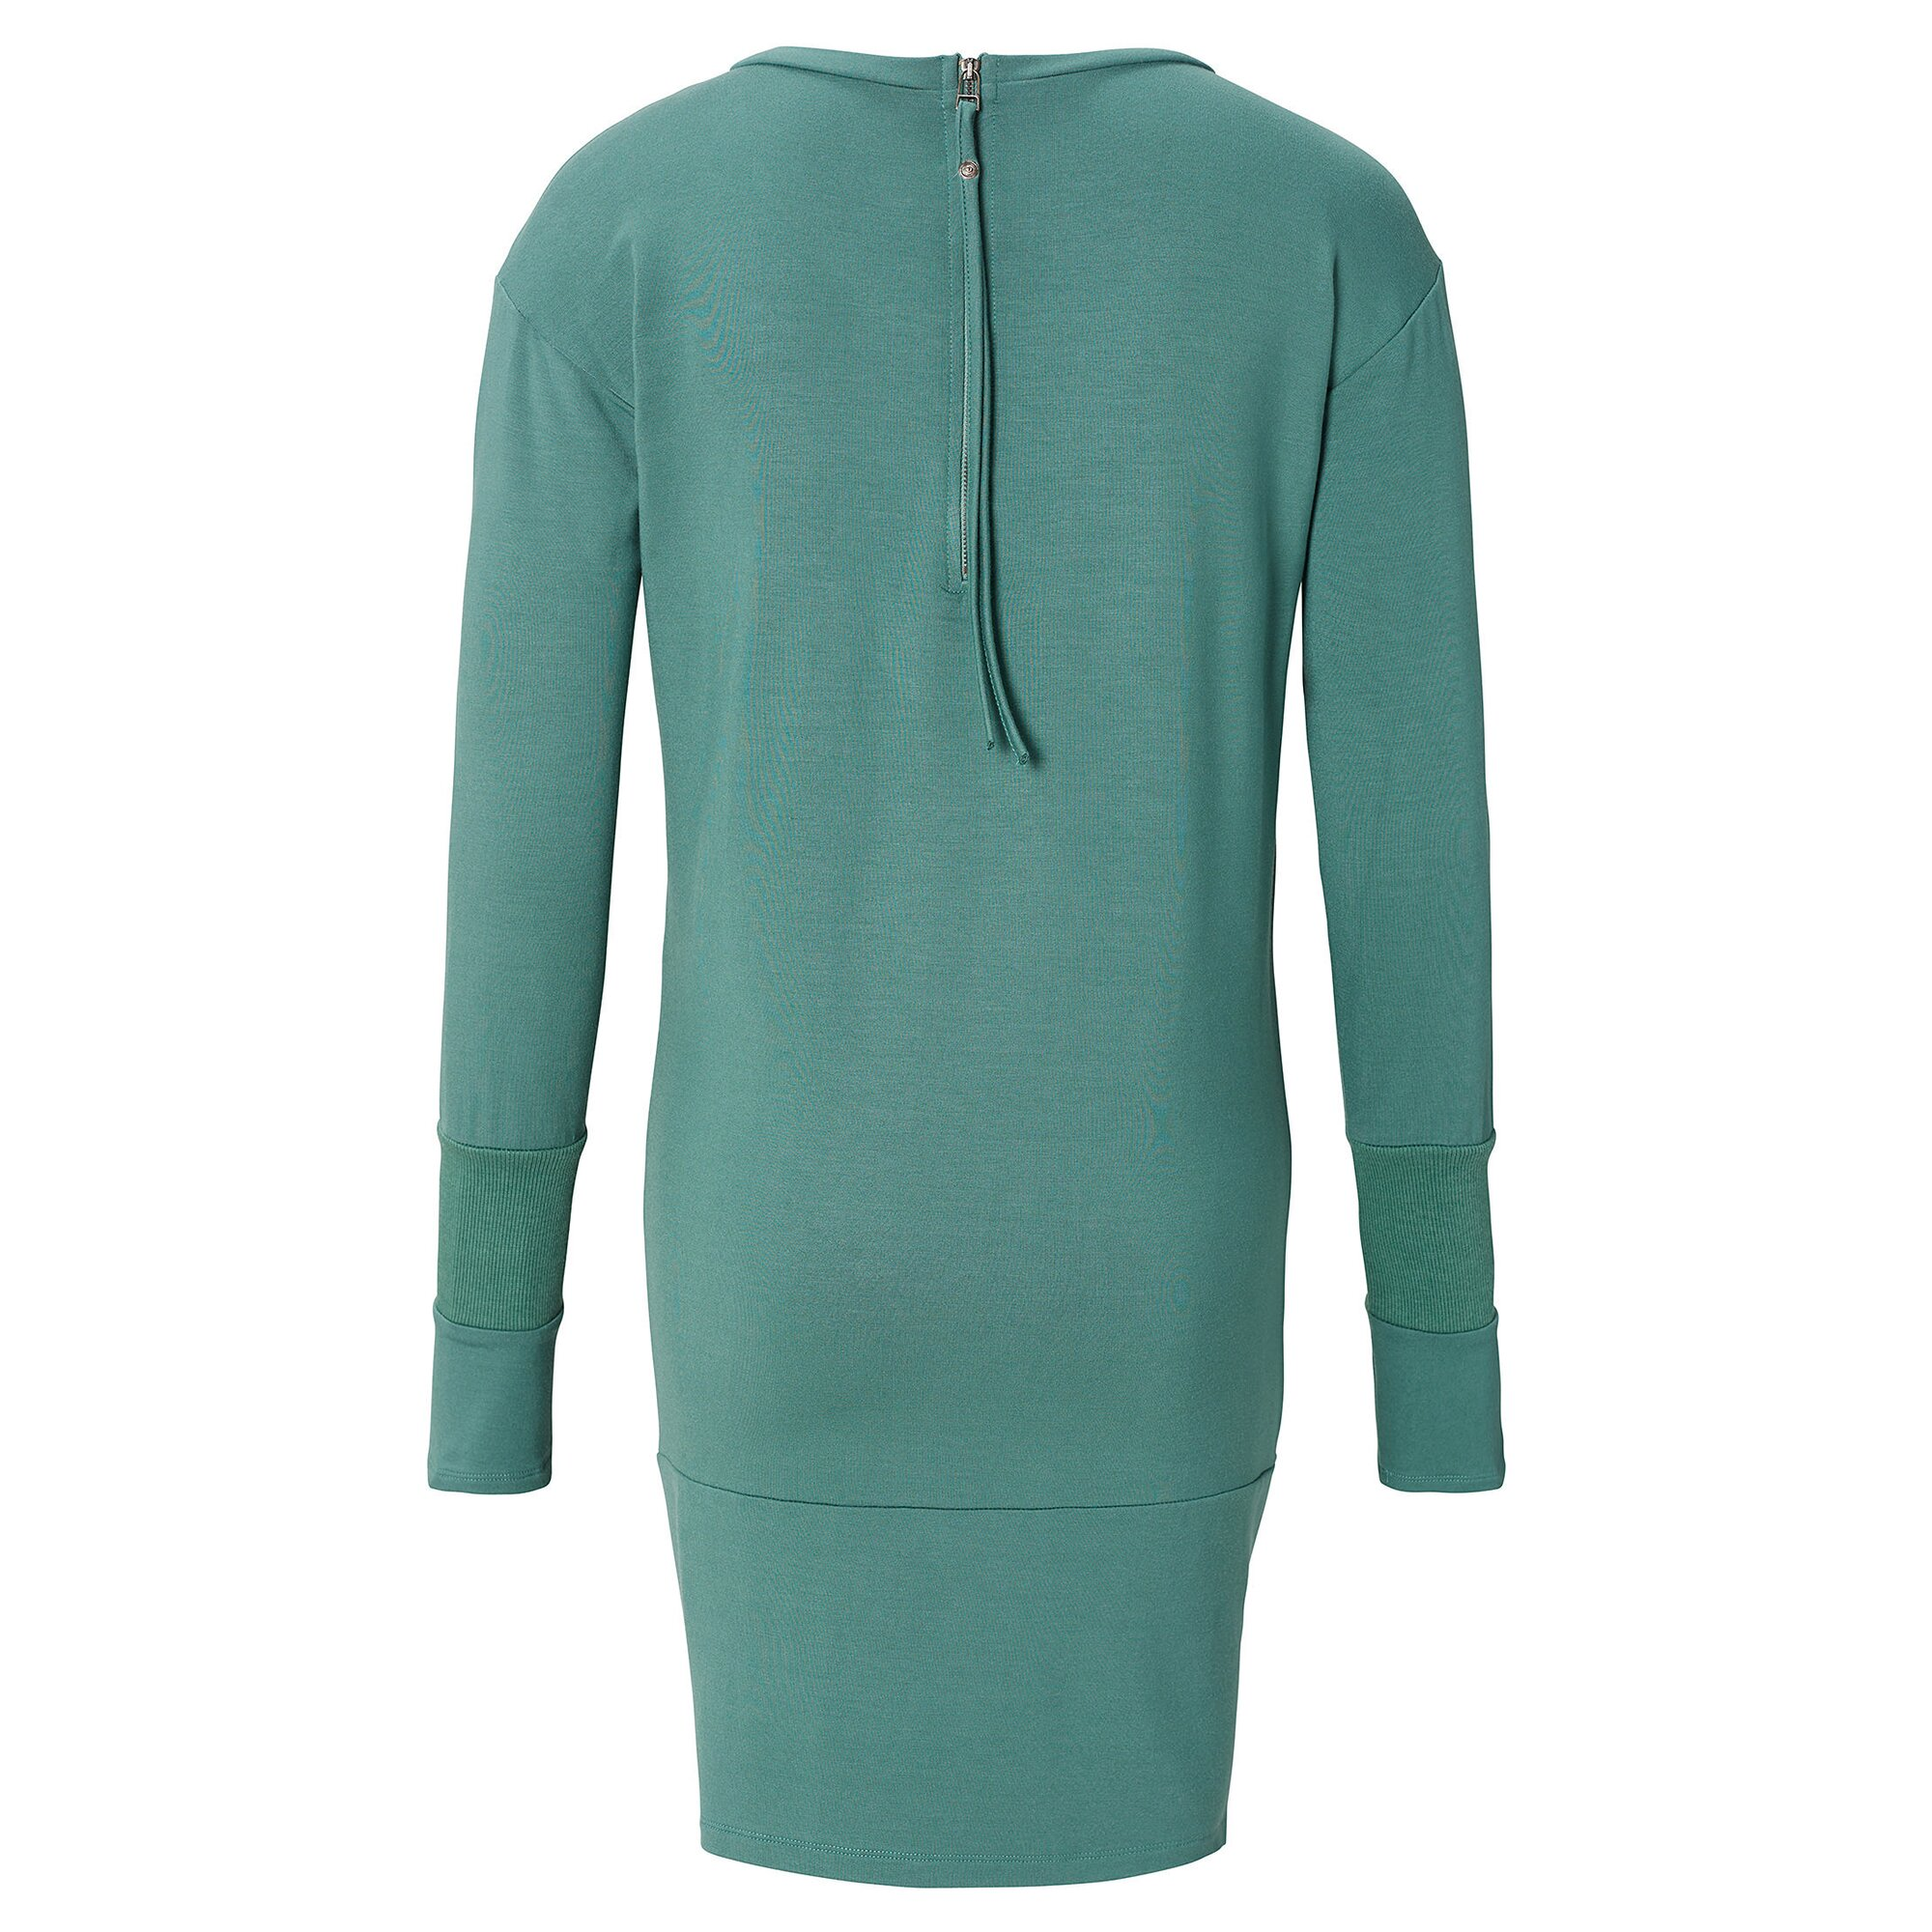 supermom-kleid-green, 49.99 EUR @ babywalz-de